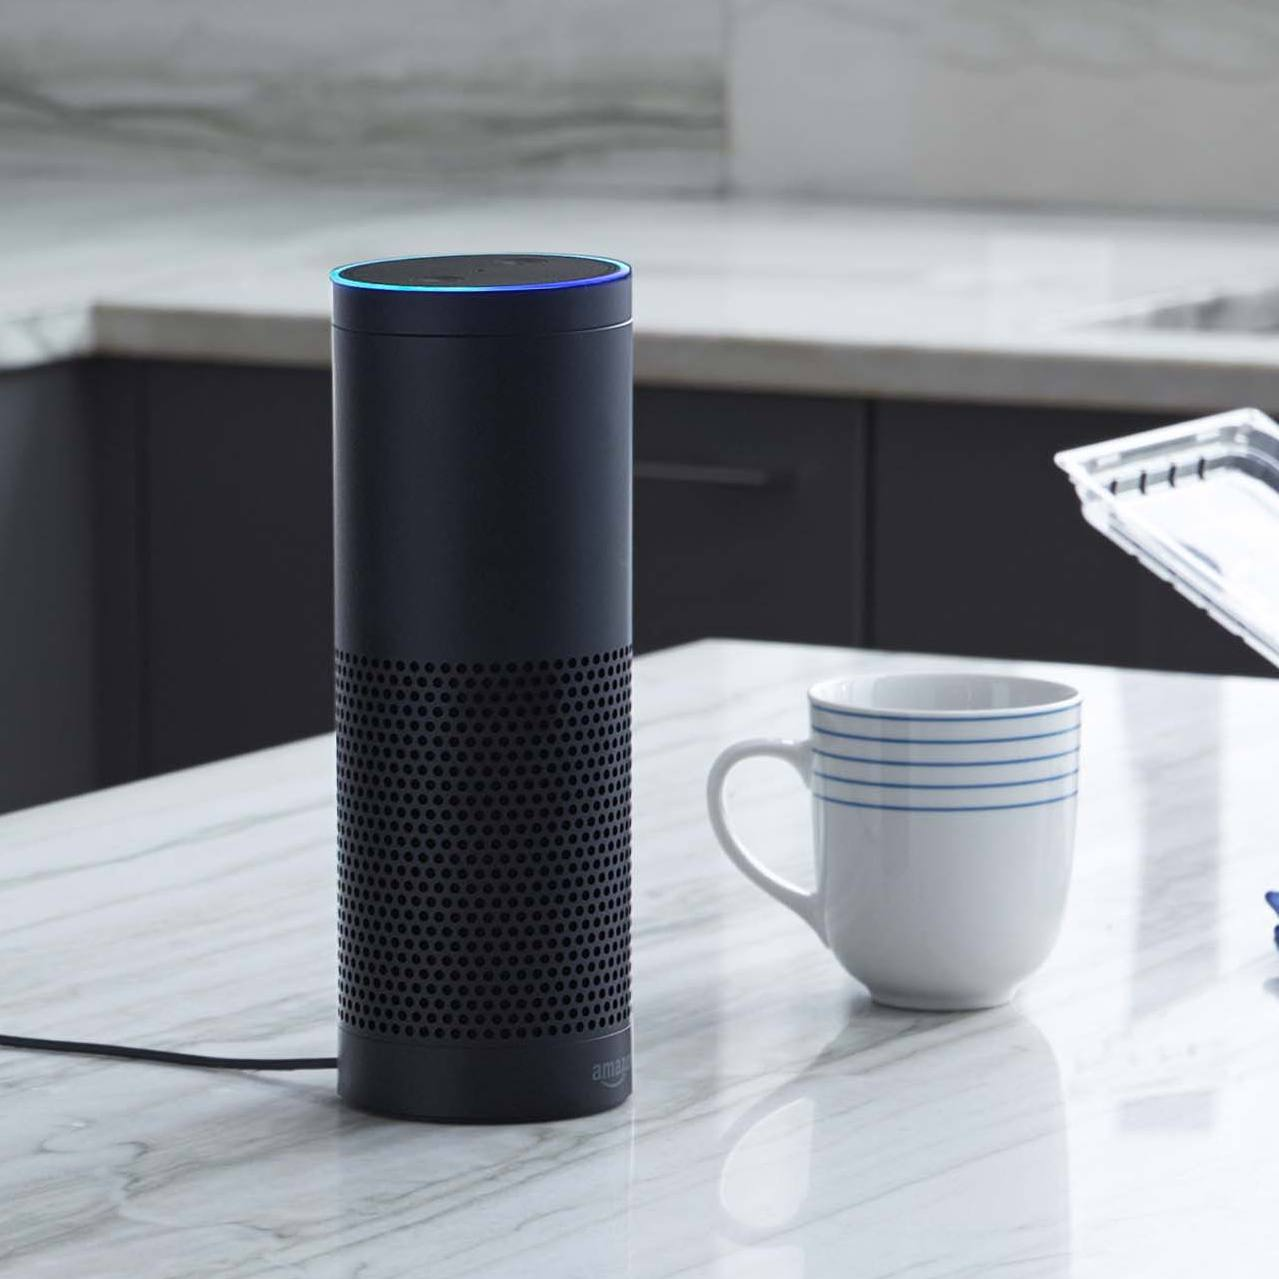 Amazon Echo Lifestyle image